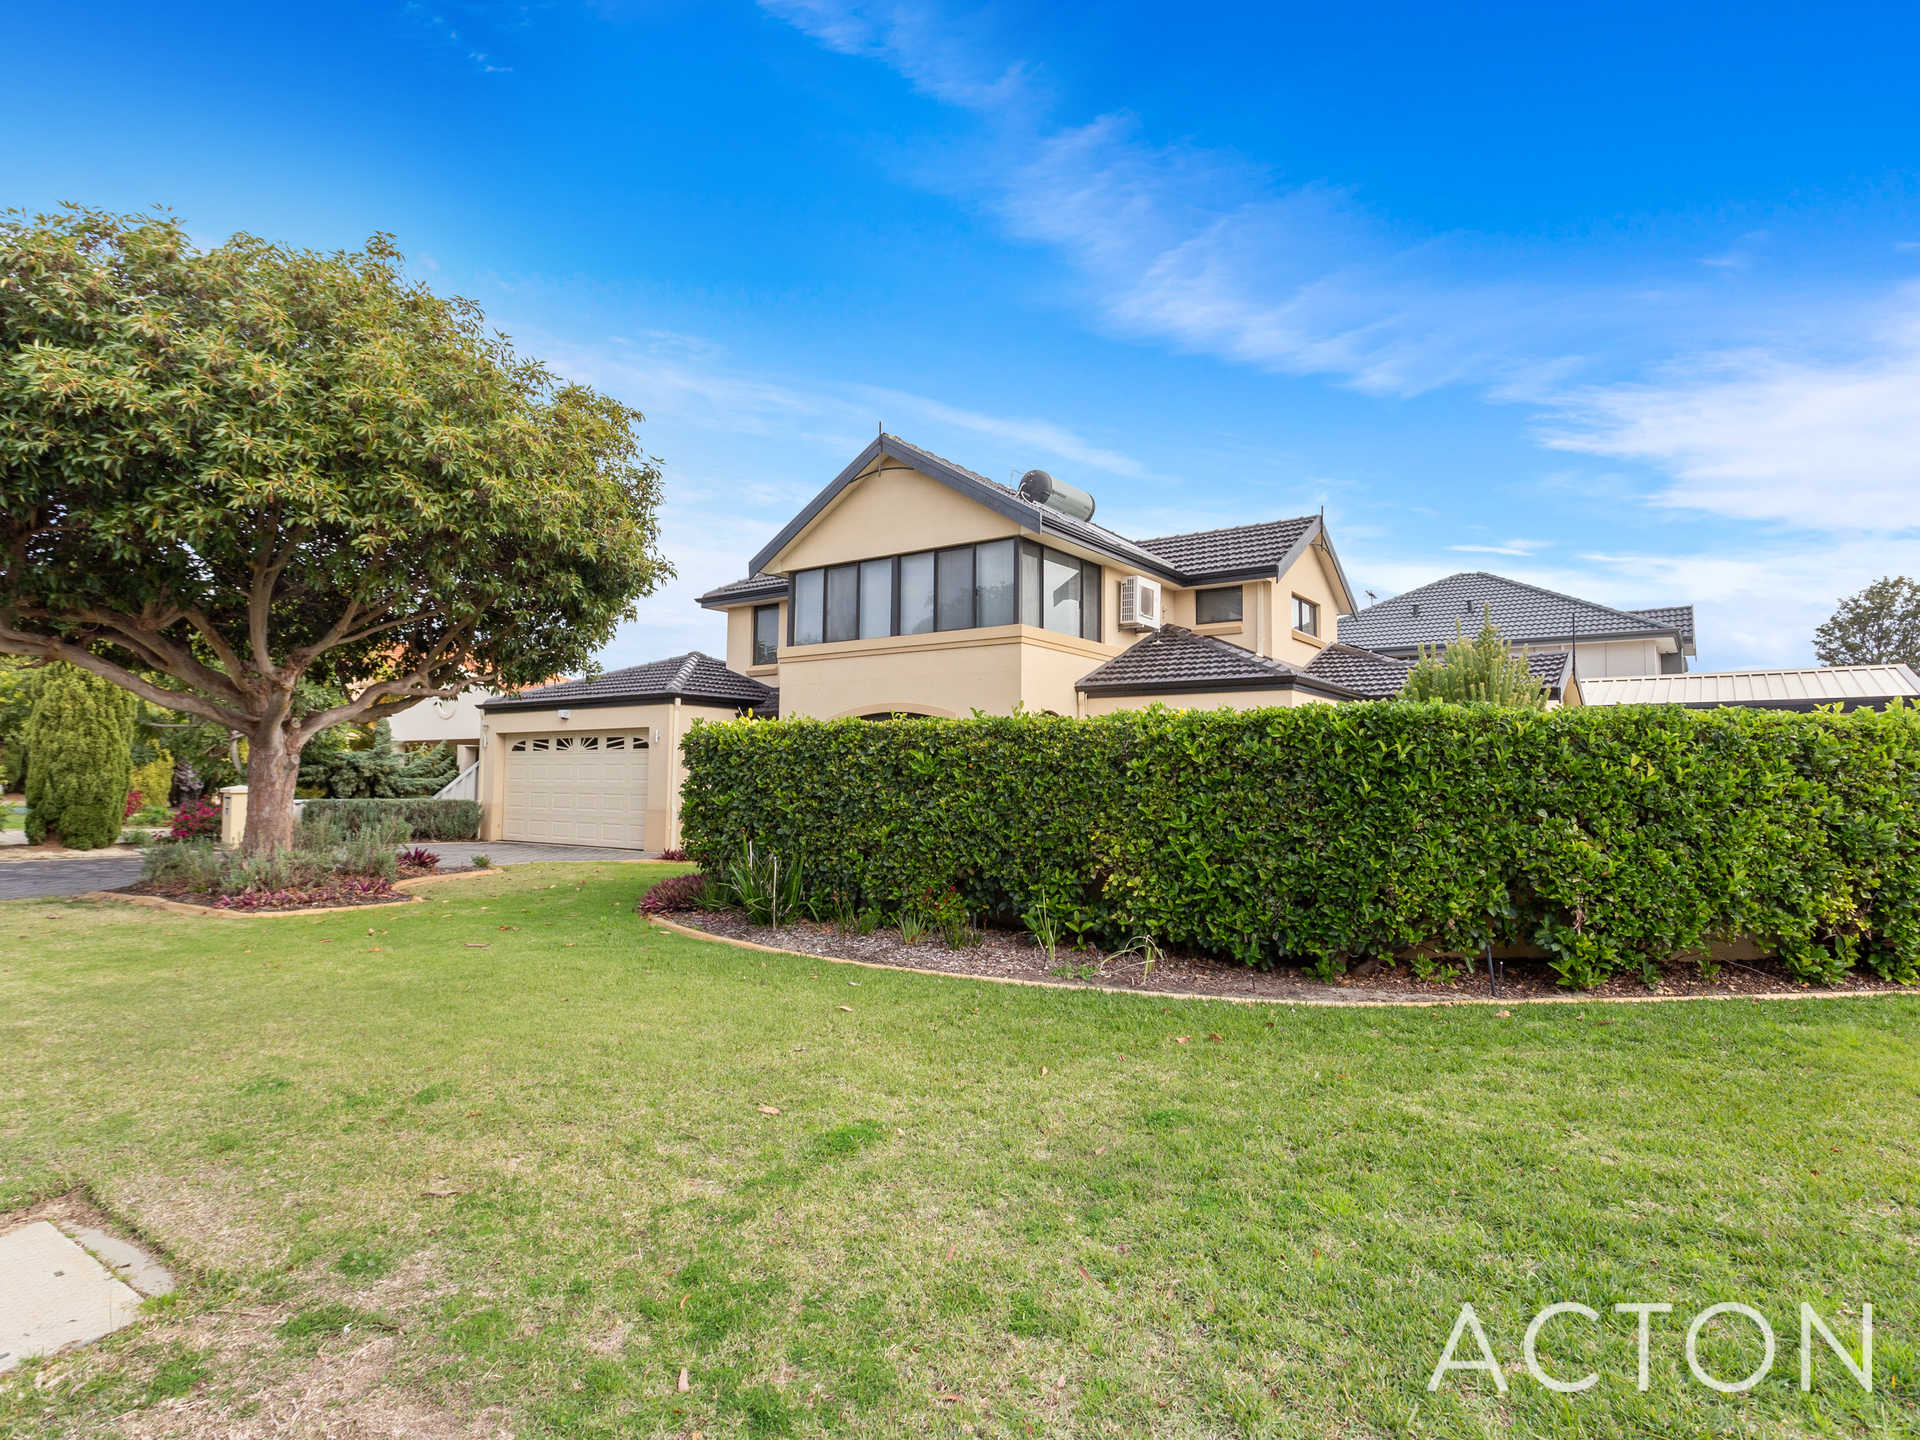 20 Strickland Road Ardross - House For Sale - 20010780 - ACTON Applecross